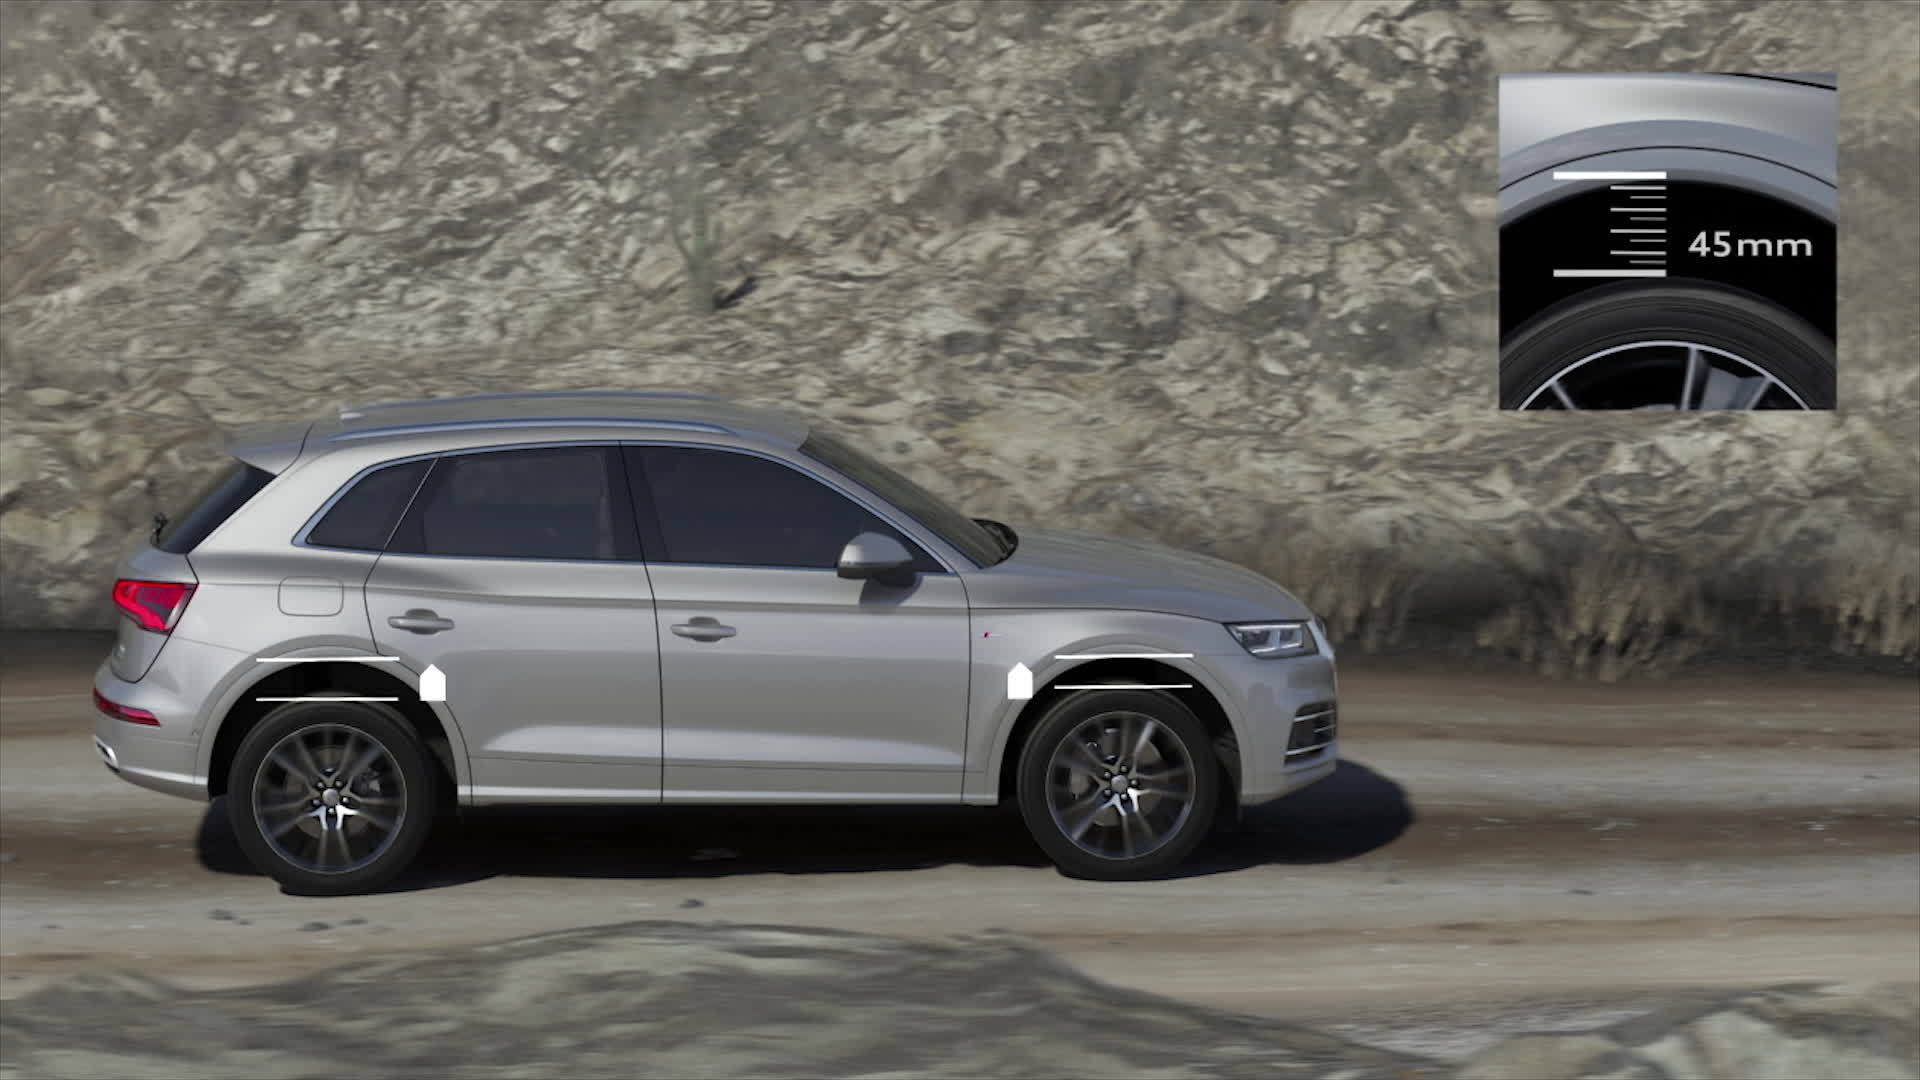 Ready for almost all landscapes - The new Audi Q5 with adaptive air suspension